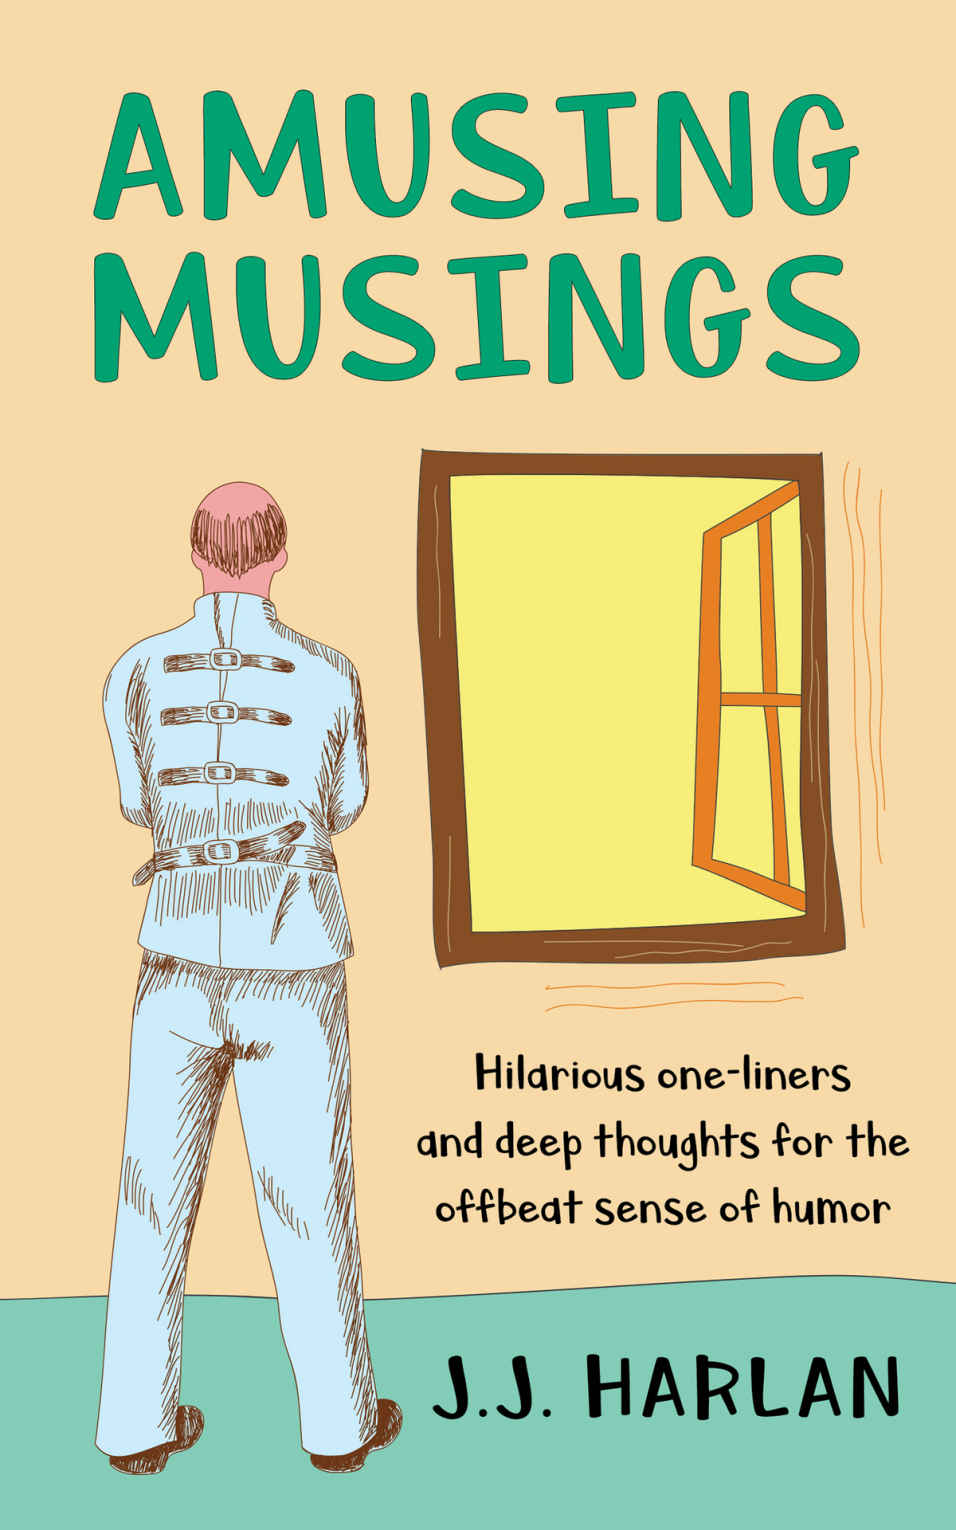 Amusing Musings: Hilarious one-liners and deep thoughts for the offbeat sense of humor by J.J. Harlan Review